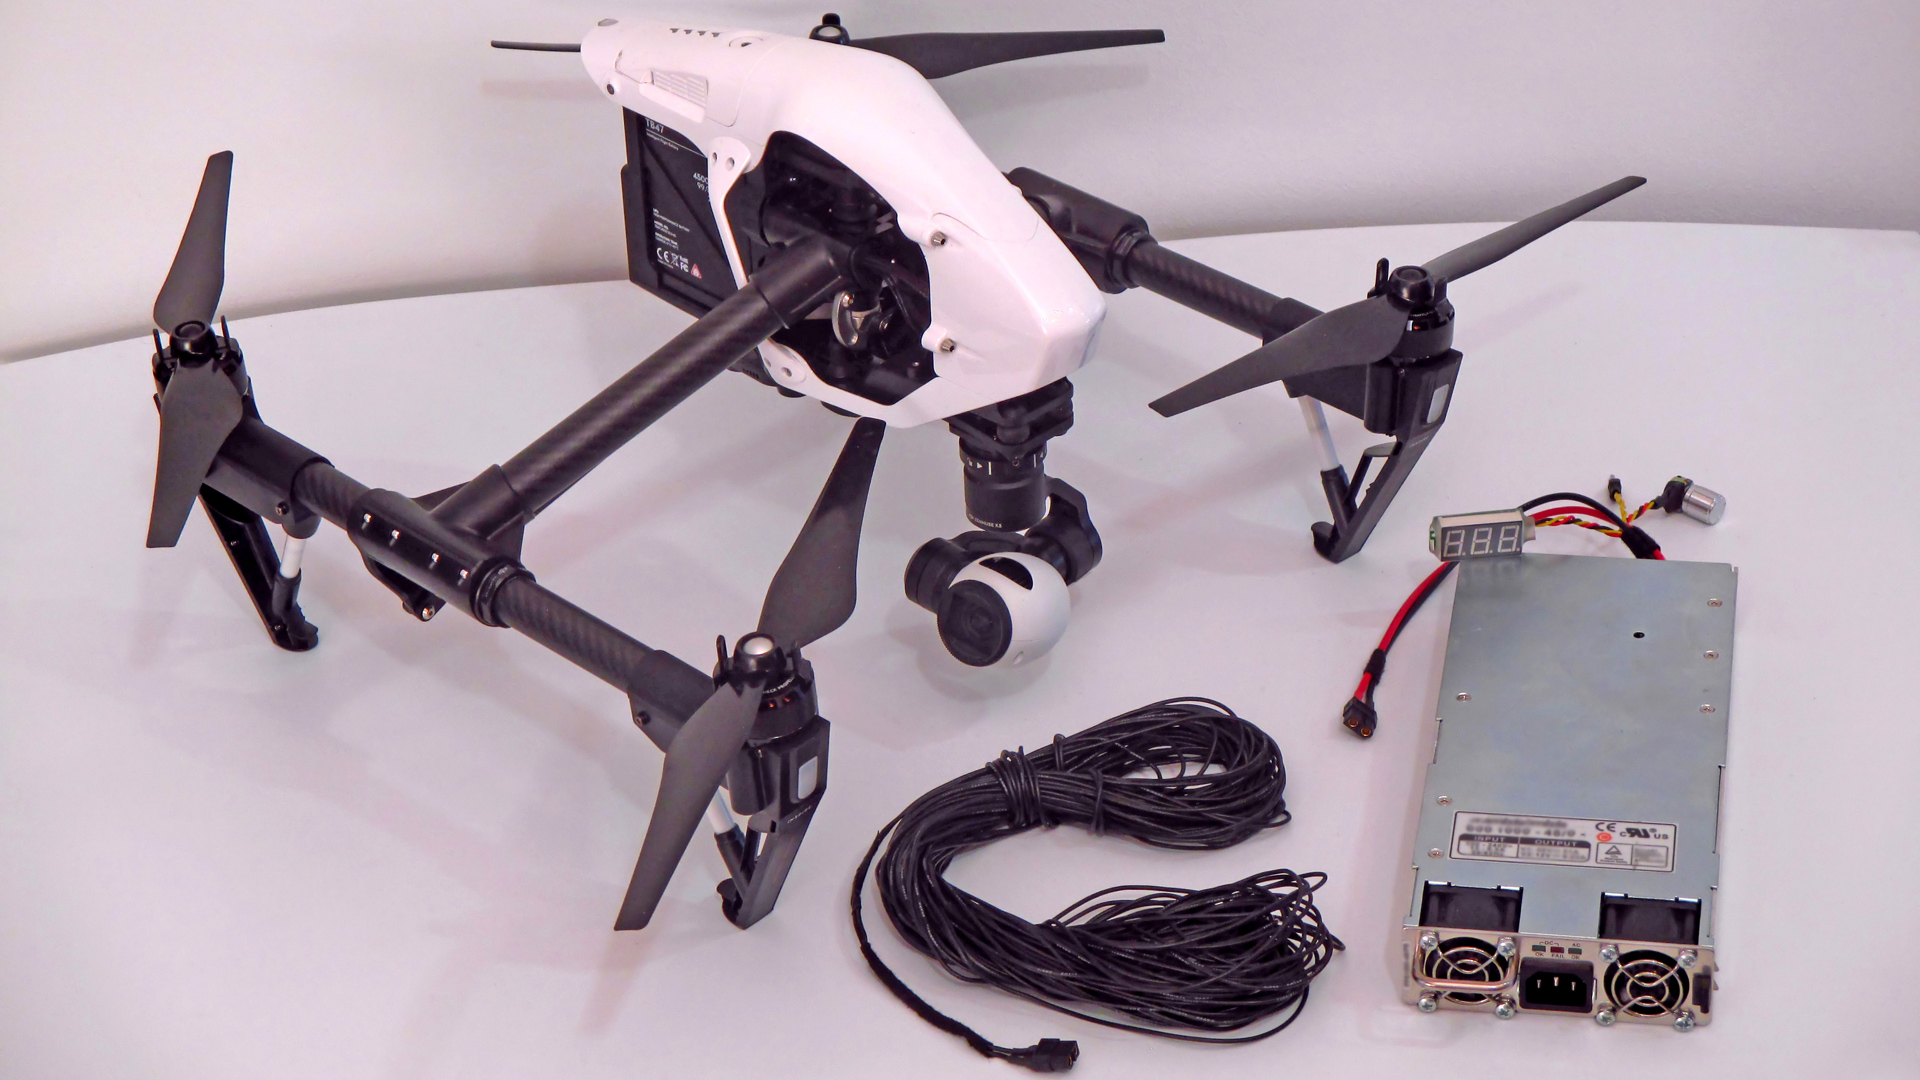 Tethered Solutions - Wired Power Supply for Drones